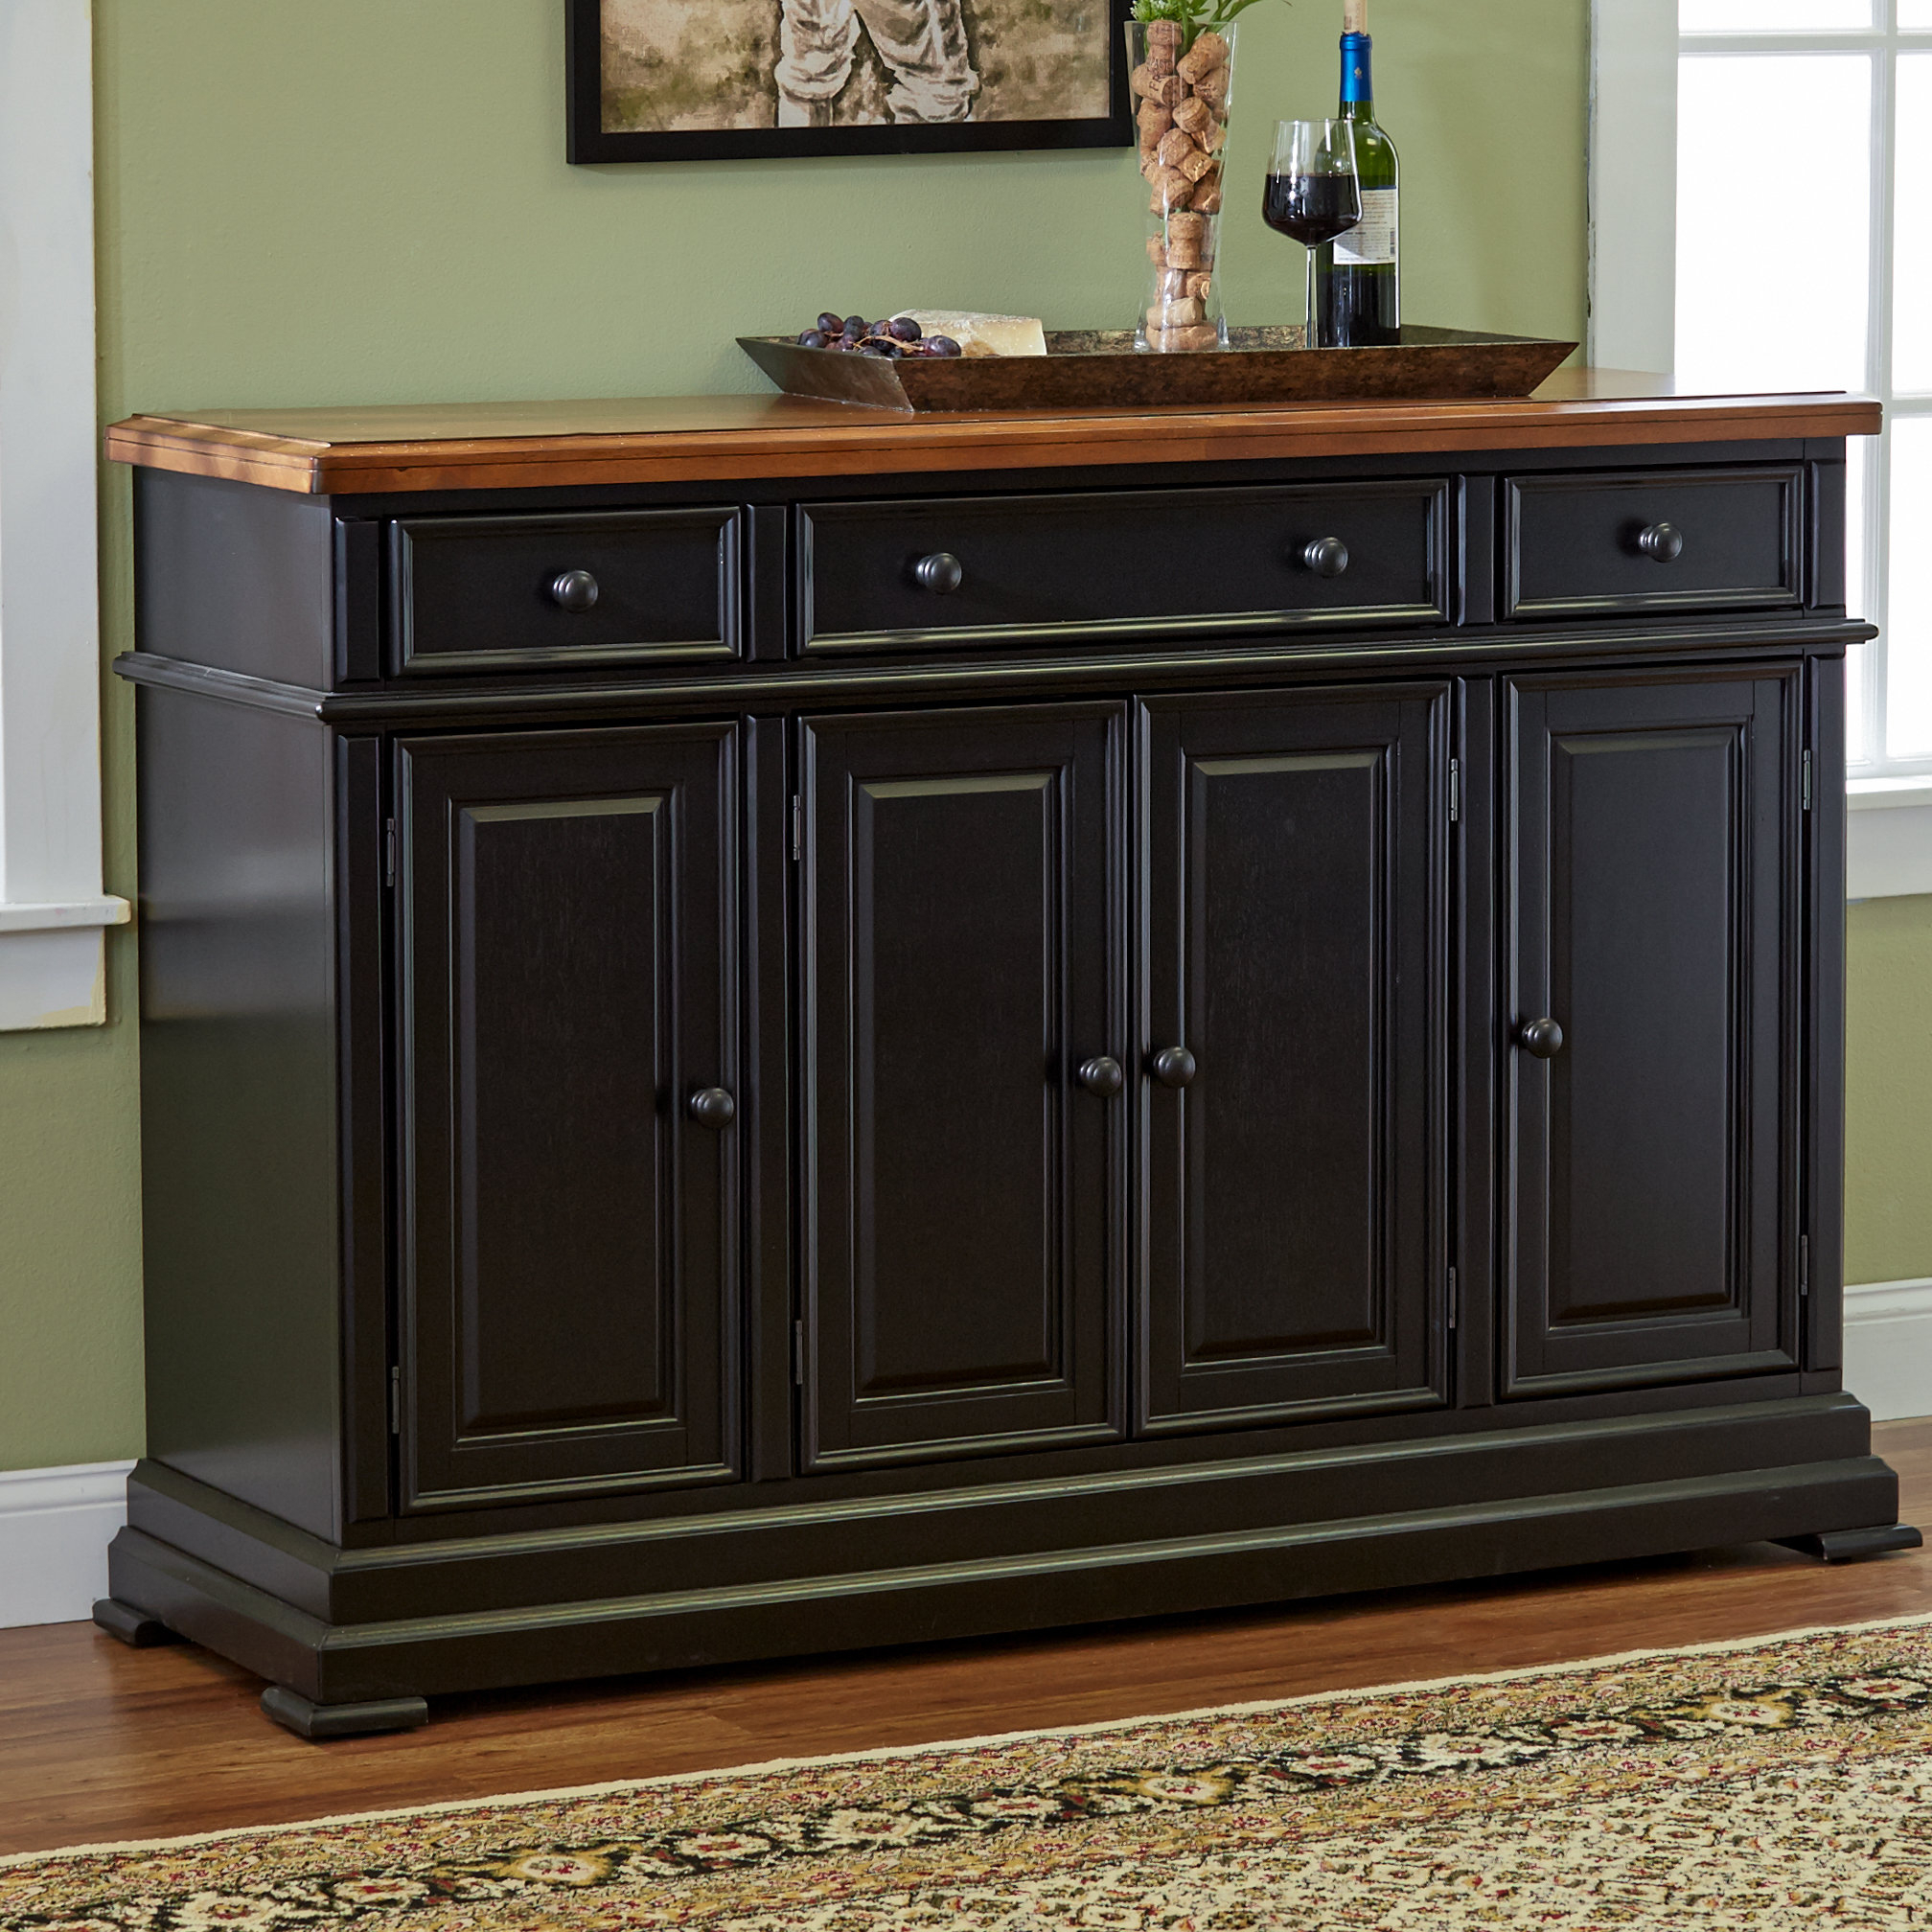 Courtdale Sideboard With Regard To Most Recent Courtdale Sideboards (#9 of 20)